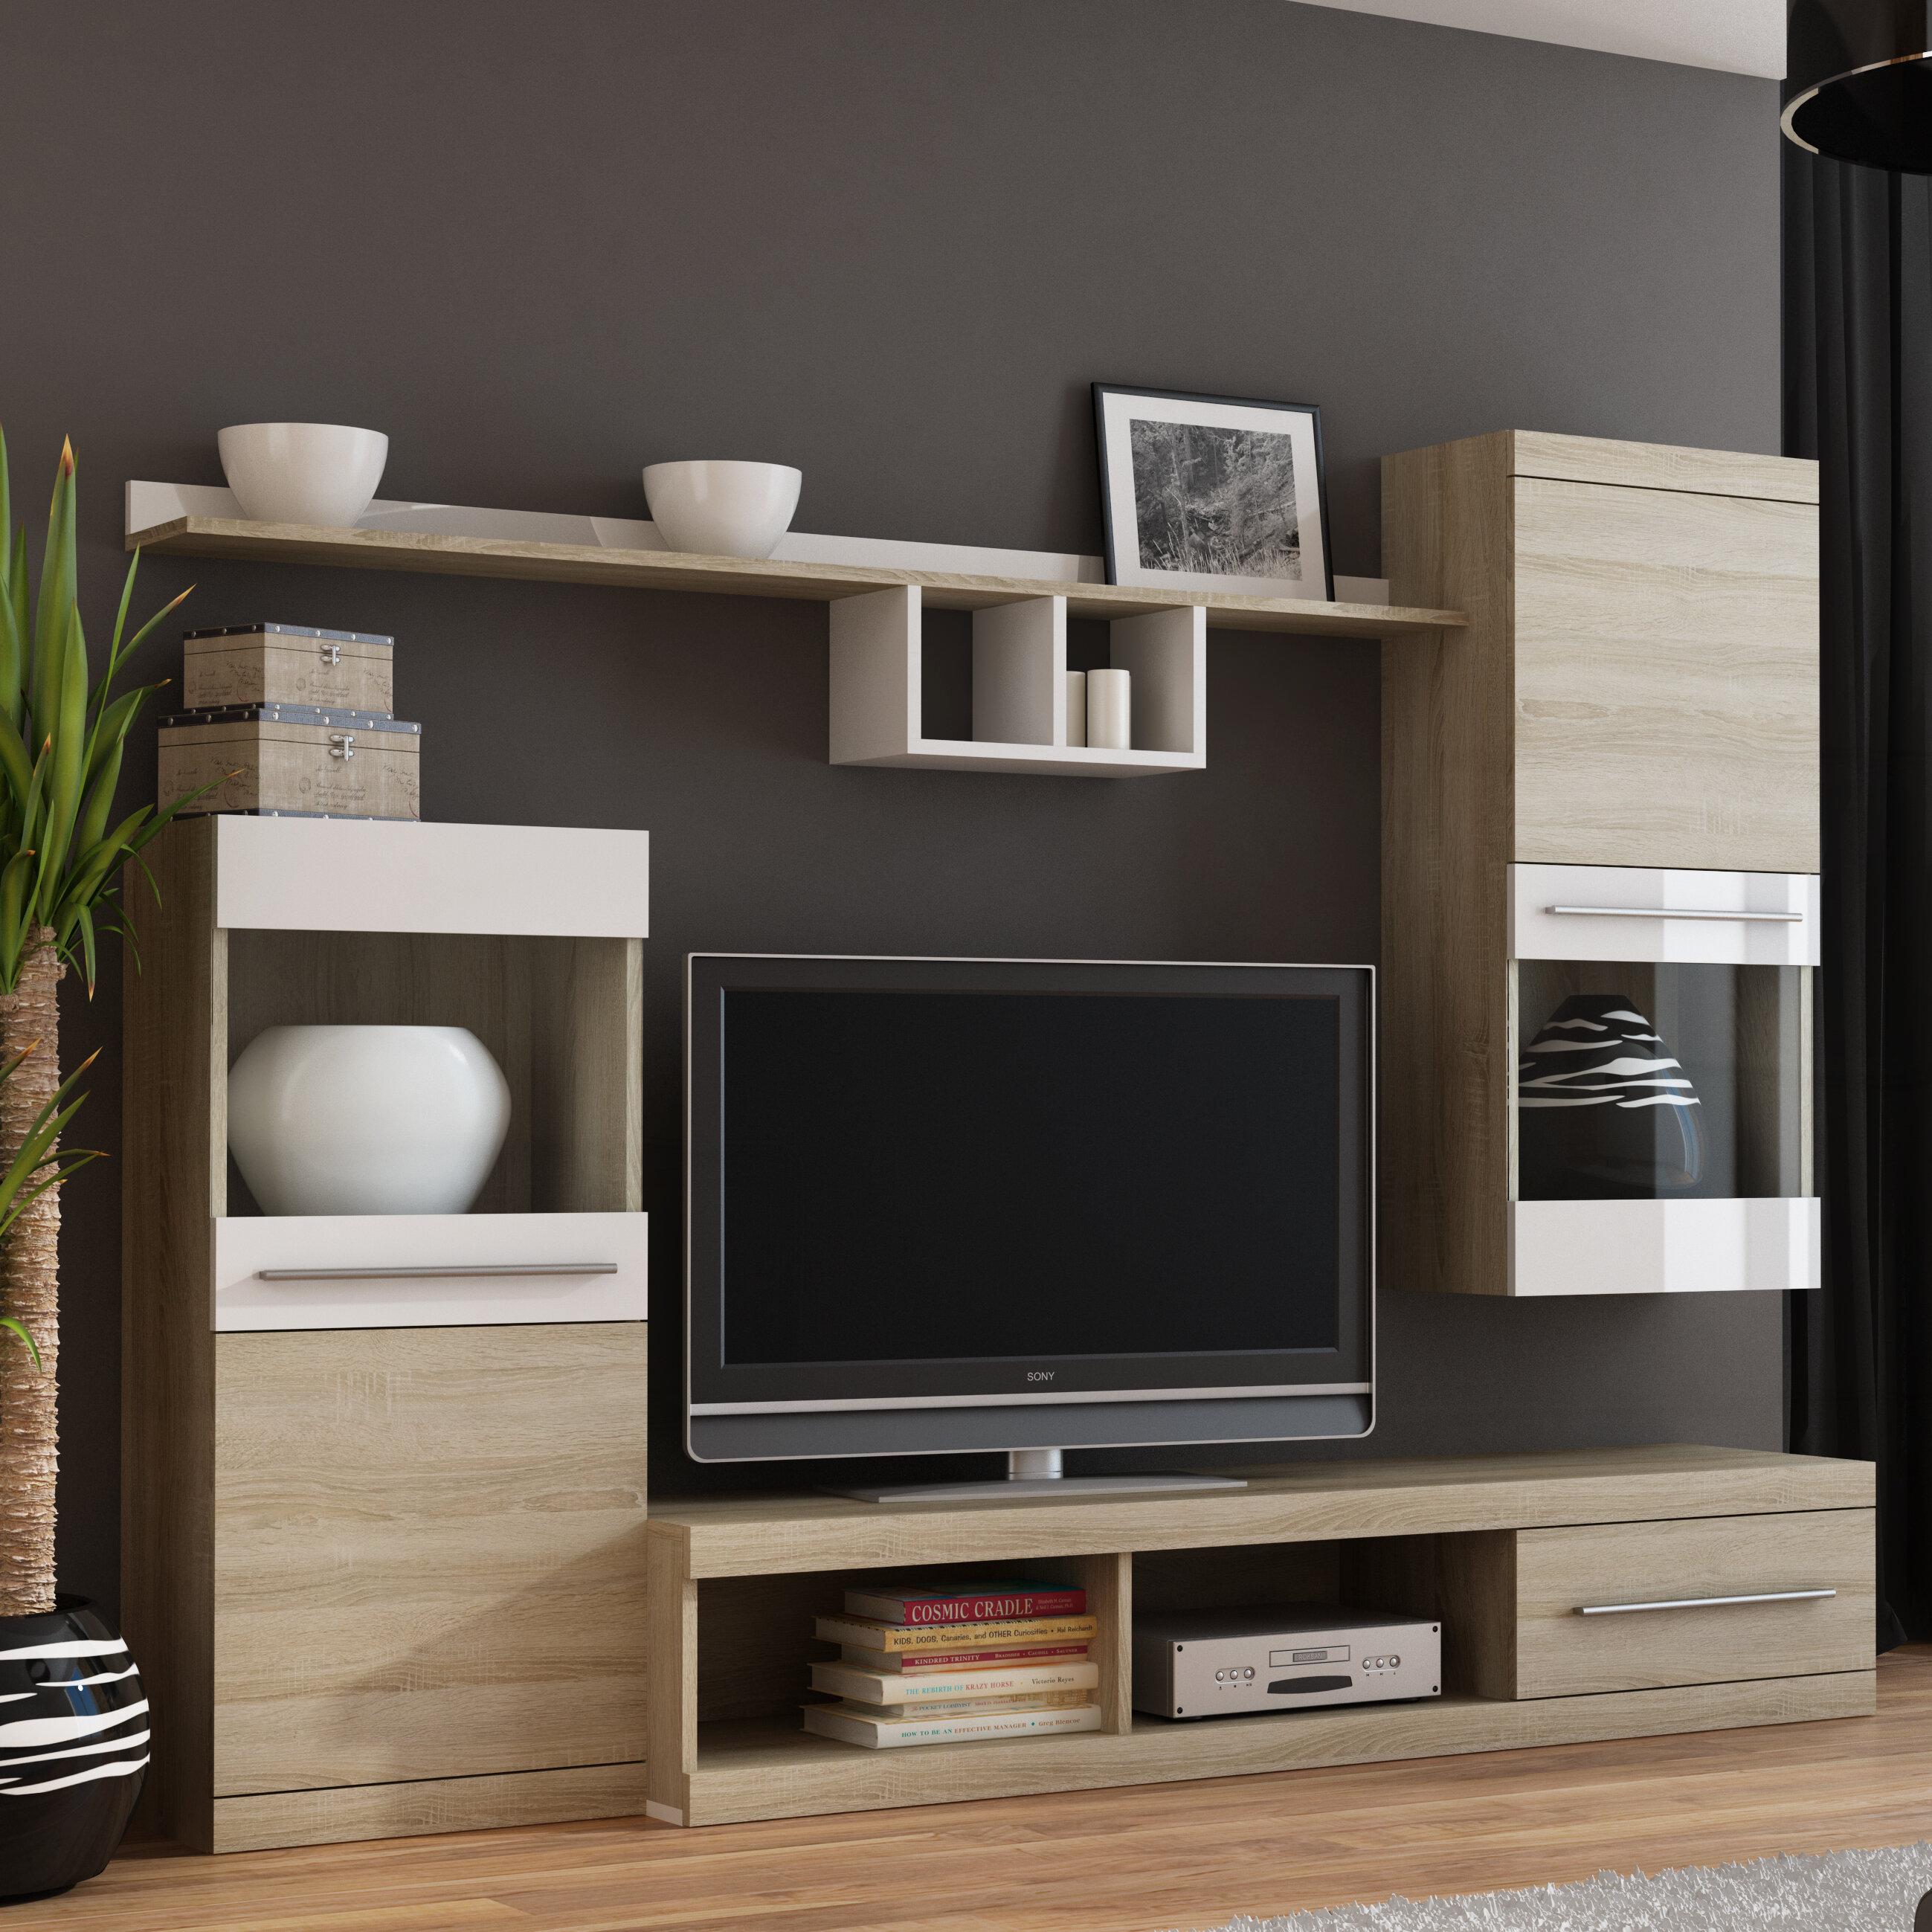 room toilet amazing ideas fireplace vanity gas entertainment living center drawers tv cabinet with sink stand bathroom designs downstairs units for wall